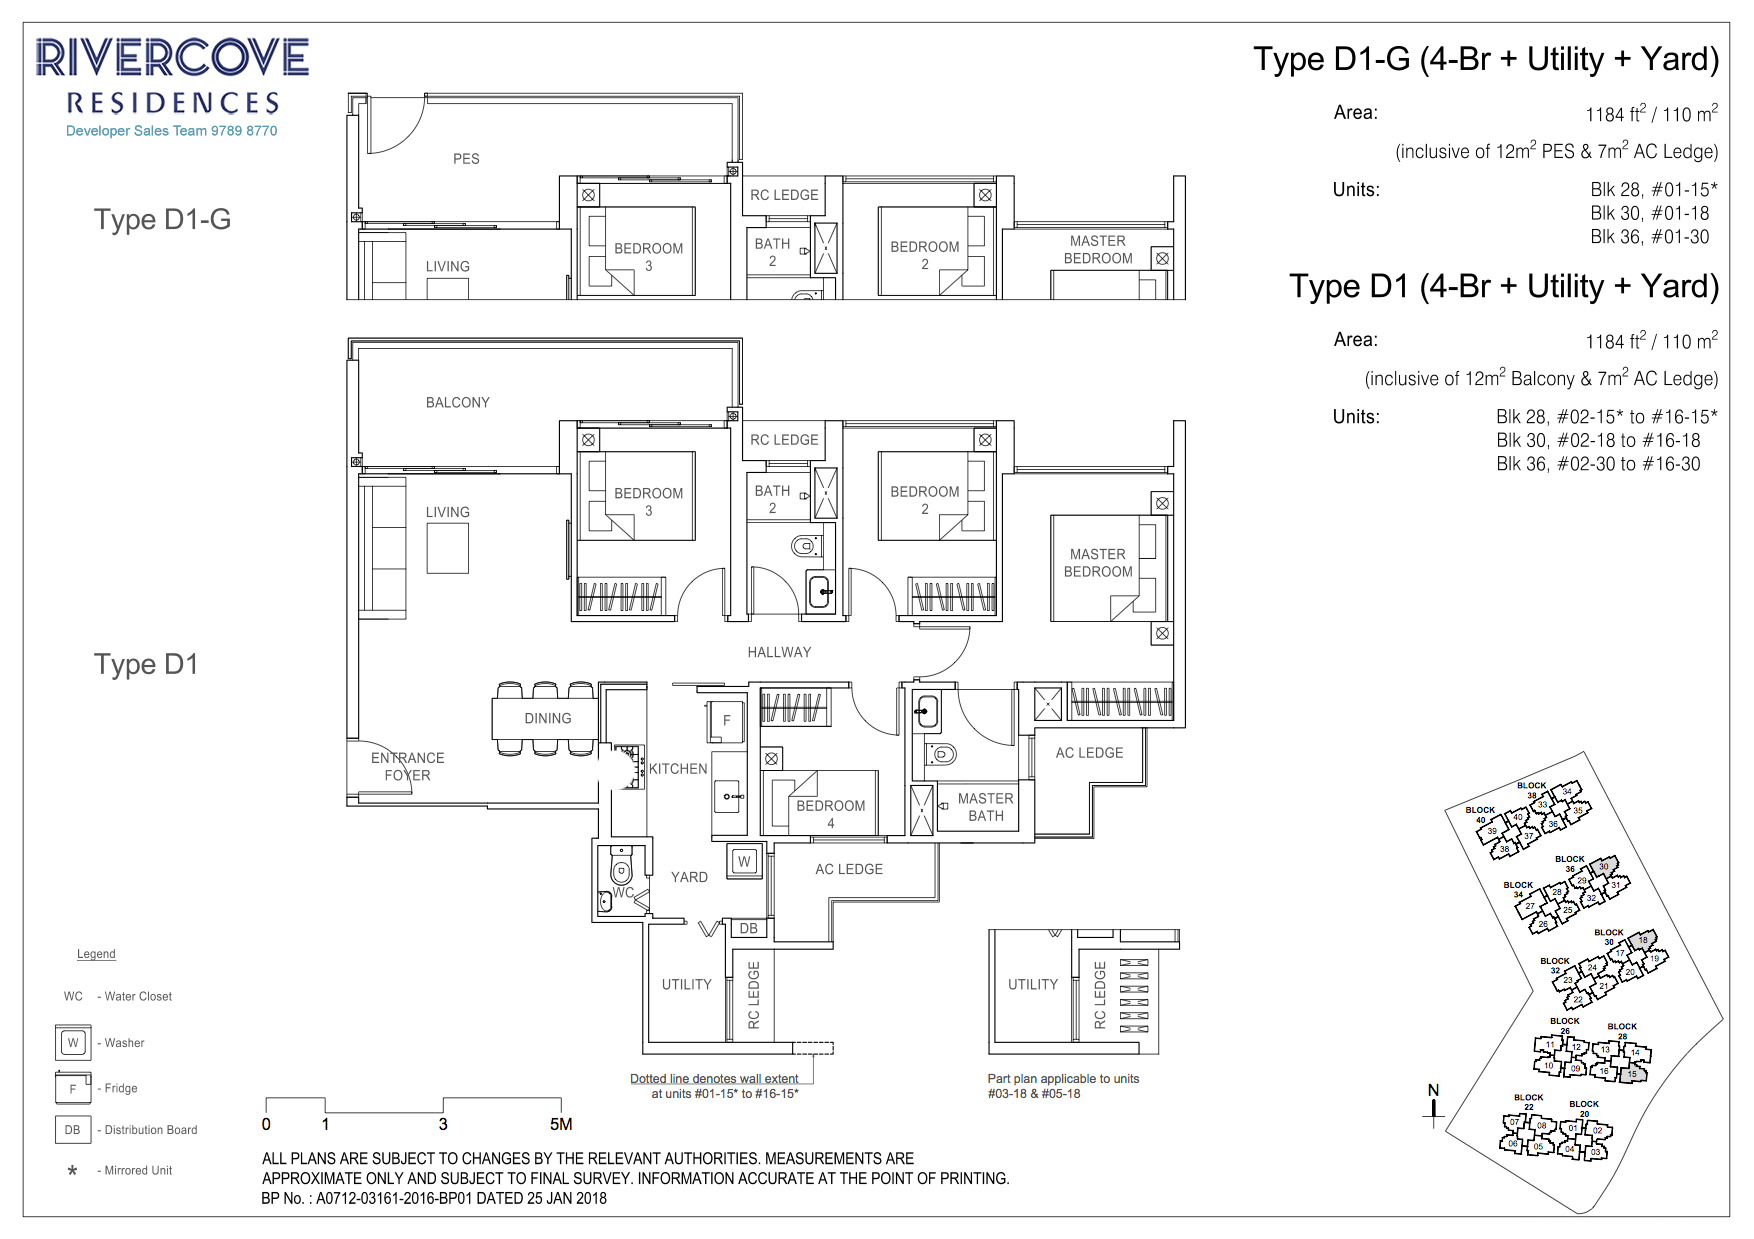 Rivercove Residences Floorplan Type D1